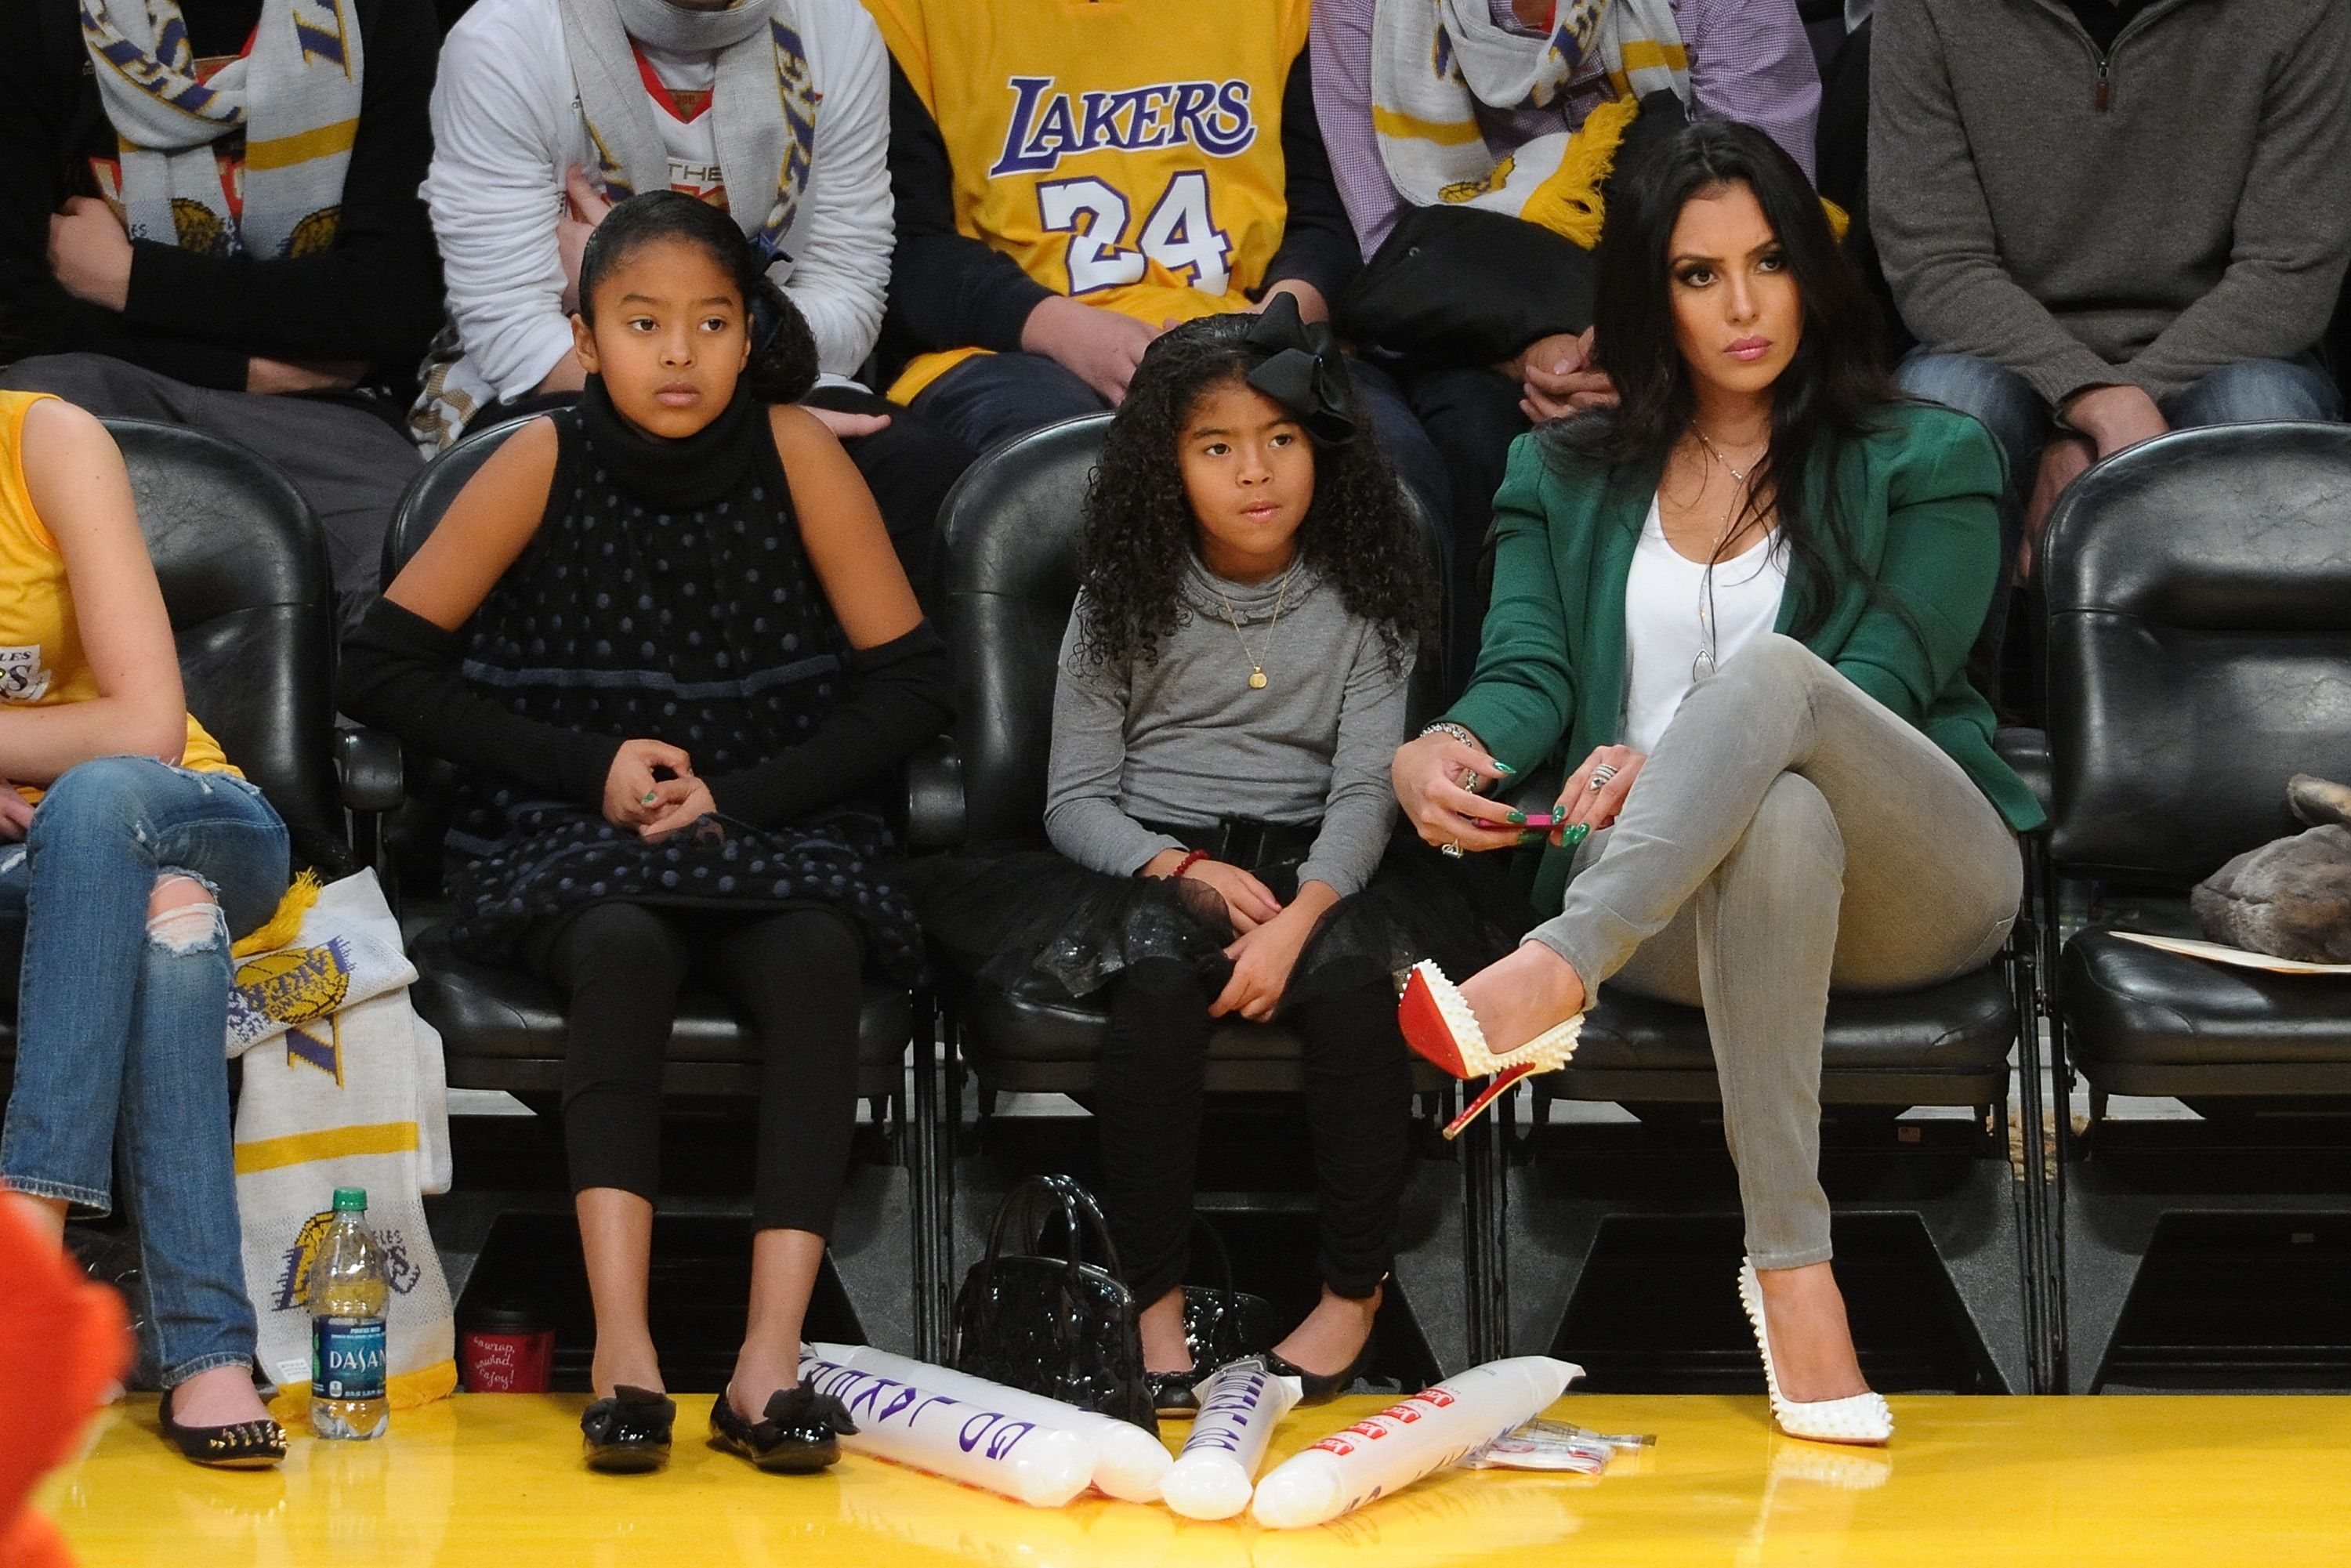 Vanessa Laine Bryant and her children at a basketball game on December 25, 2012 in L.A. | Photo: Getty Images